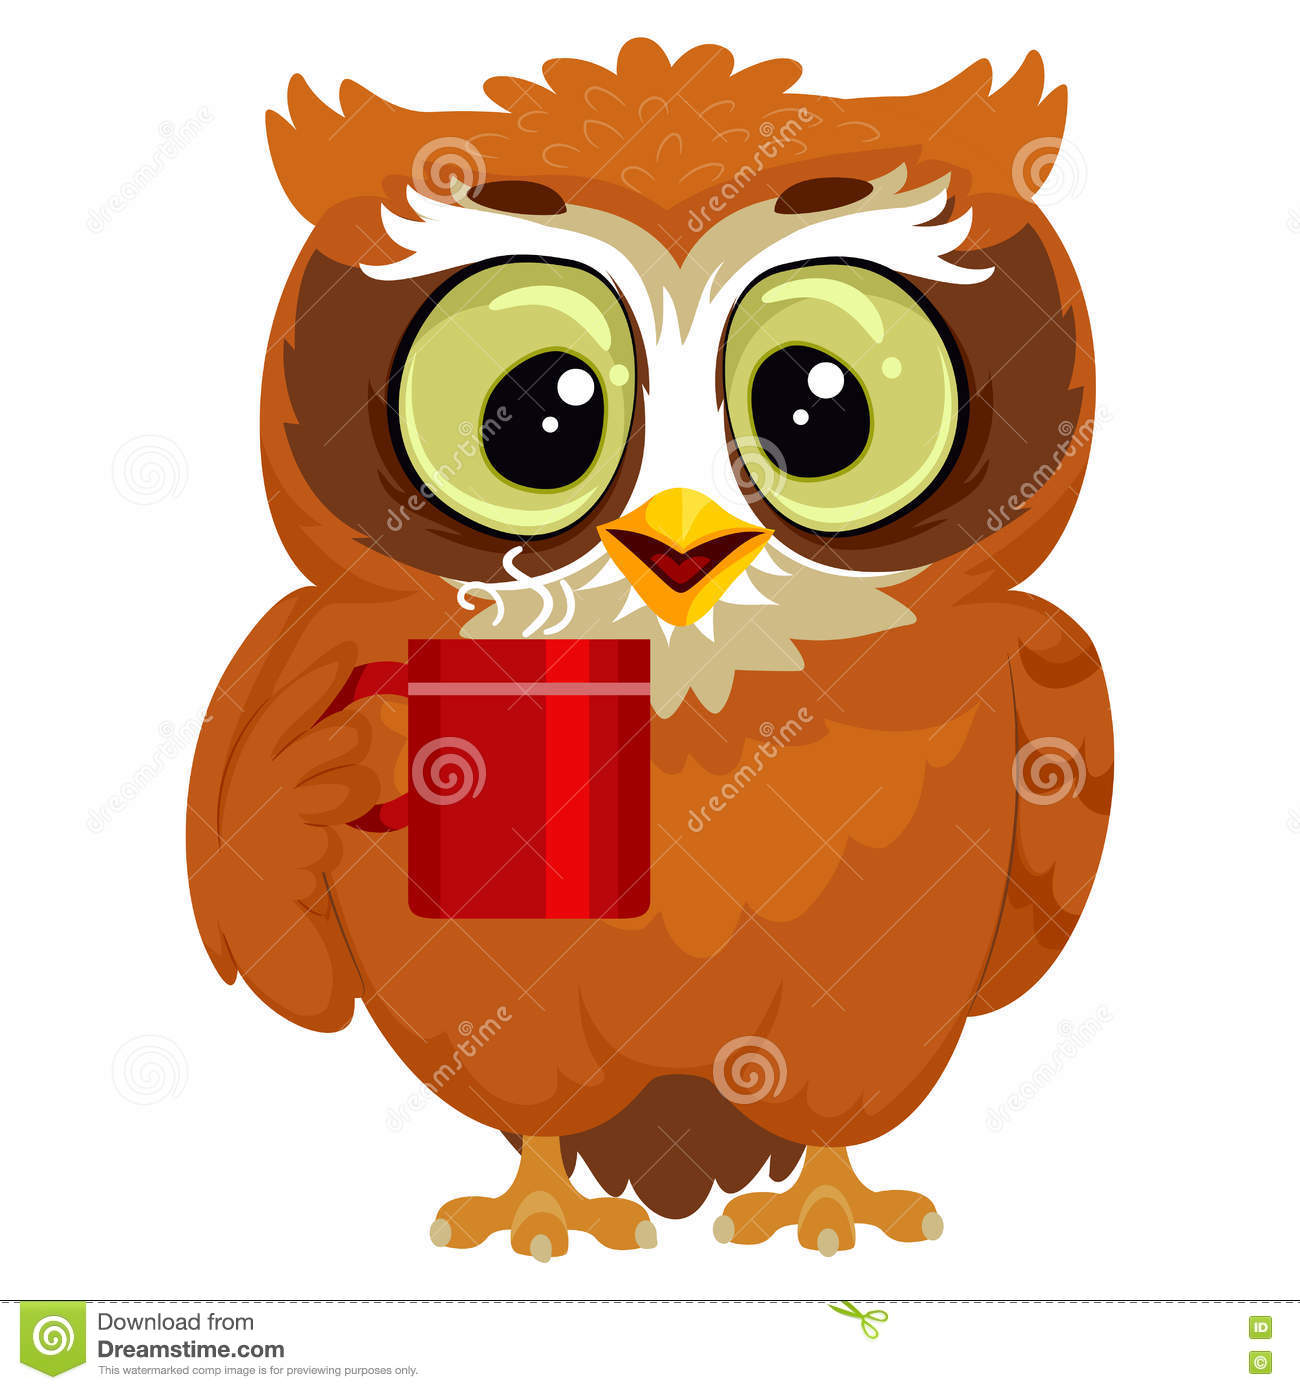 Owl drinking a cup of coffee